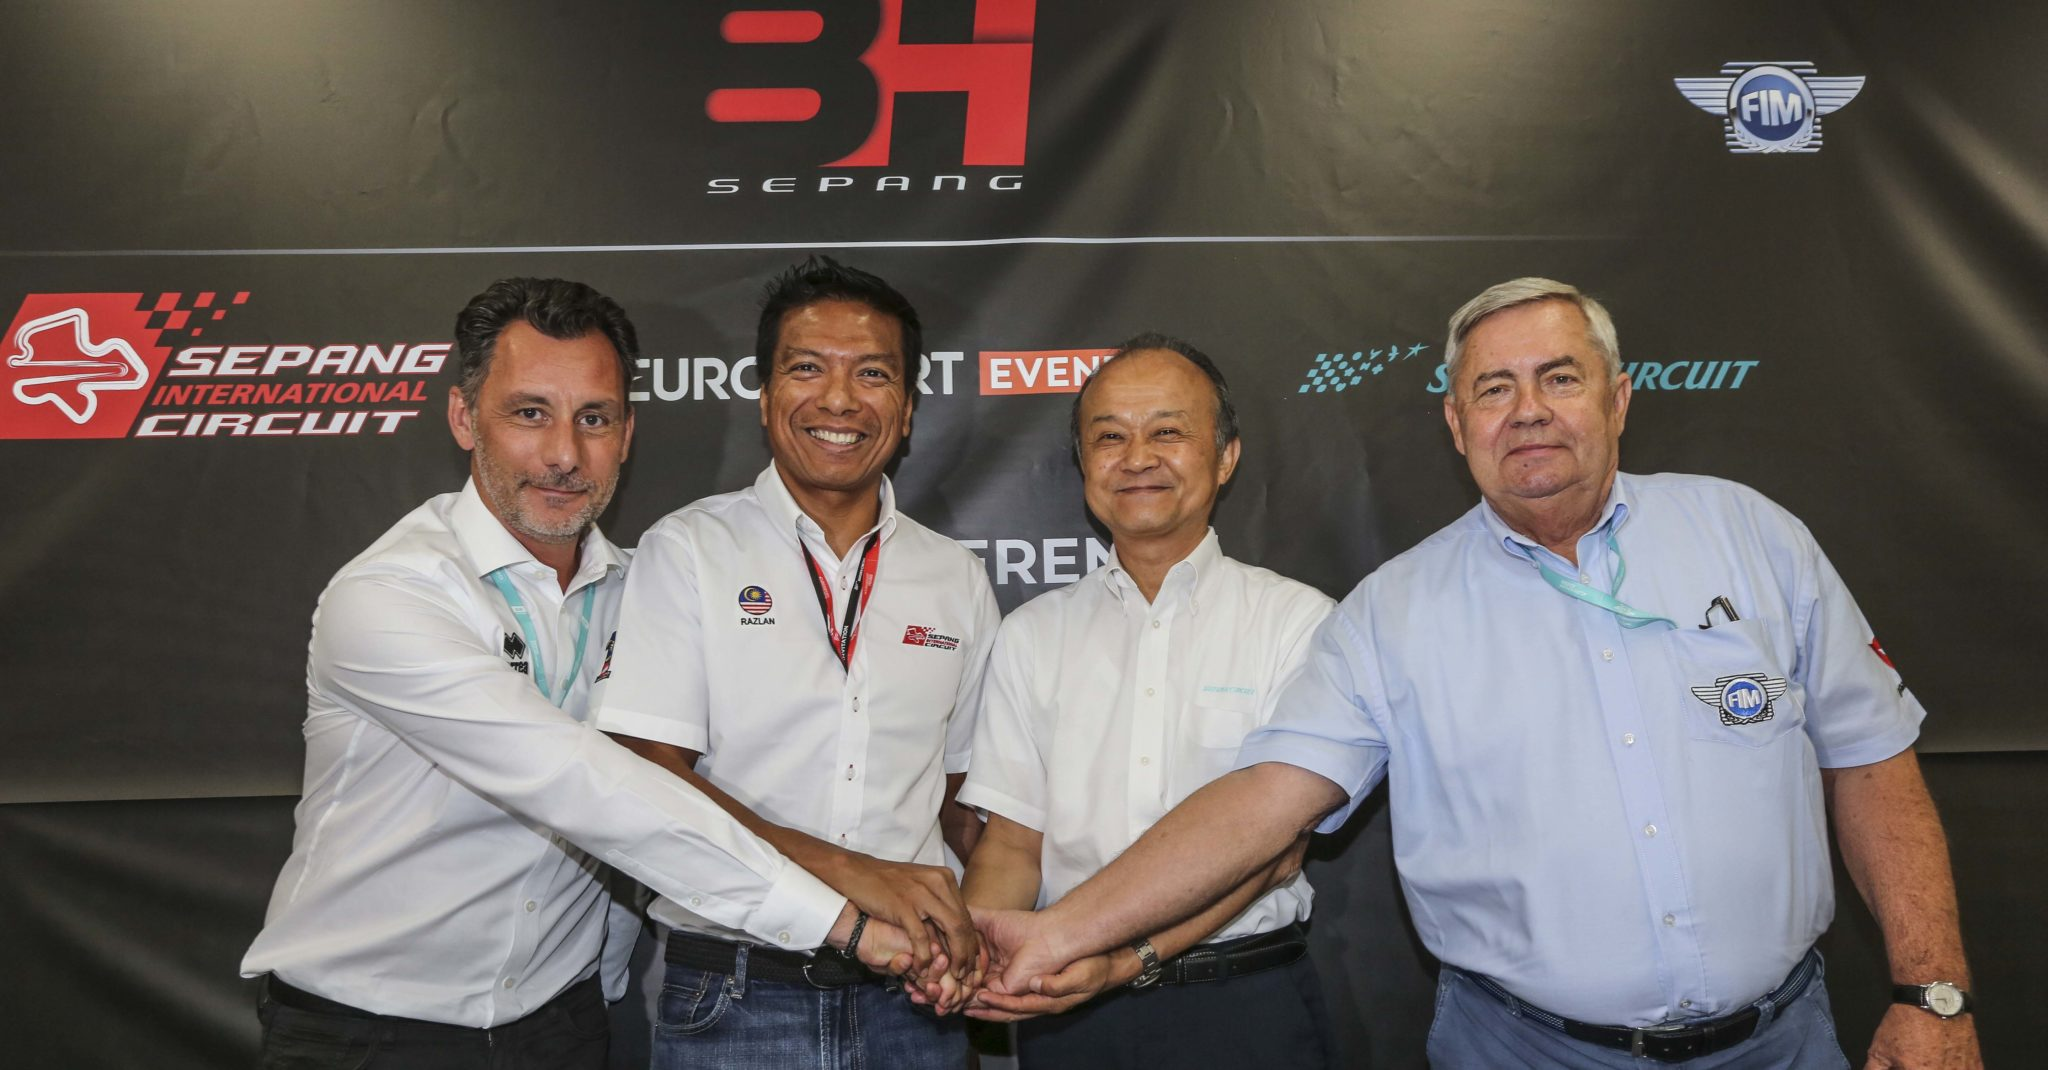 Sepang 8 Hours joins the FIM EWC championship in 2019